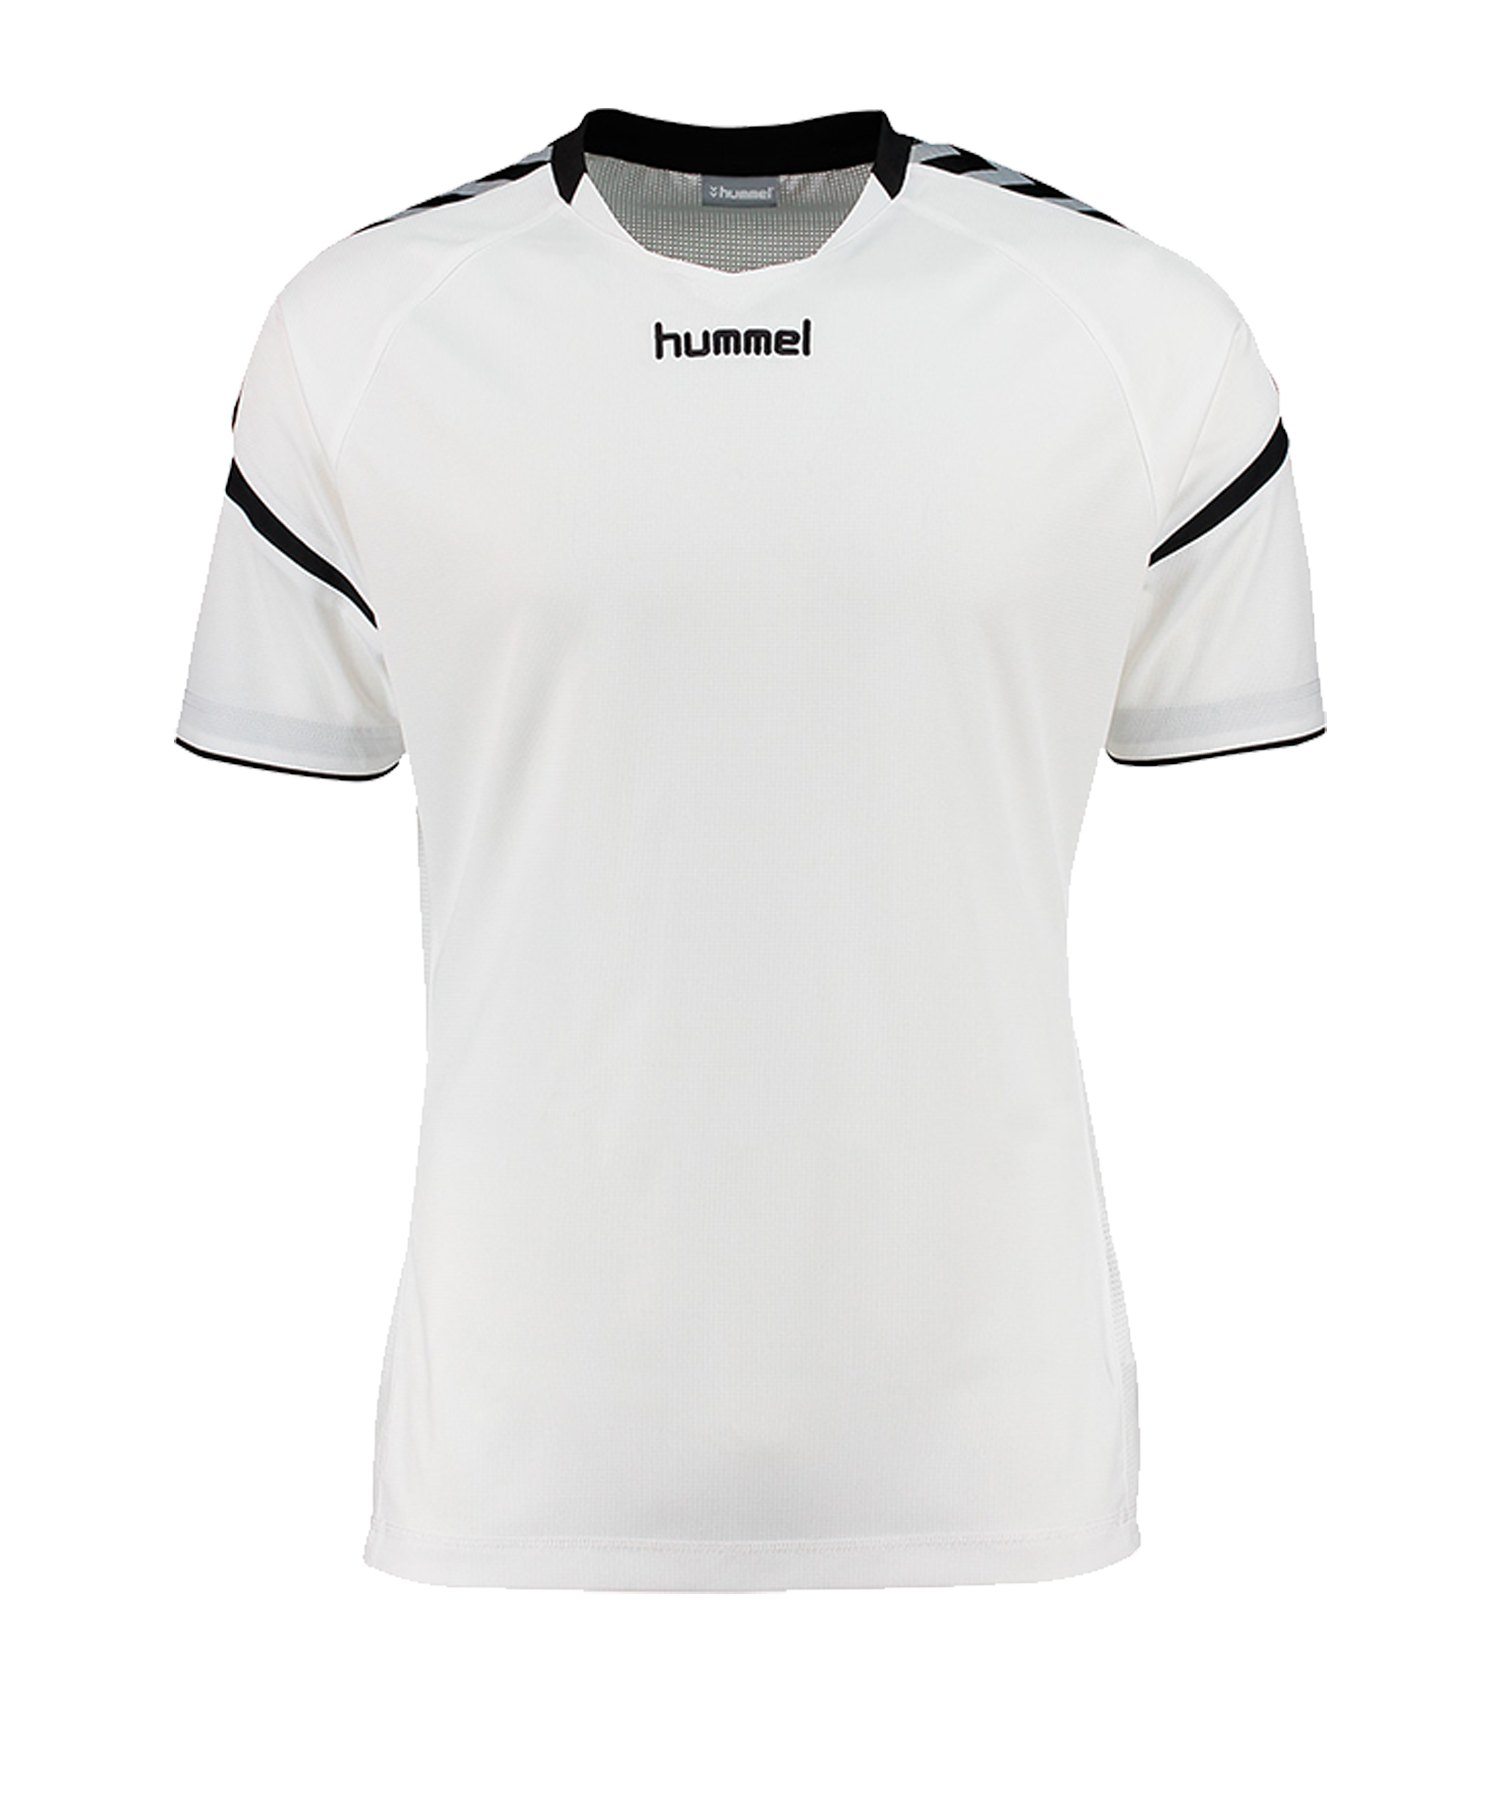 Hummel Authentic Charge Trikot kurzarm Weiss F9006 - Weiss